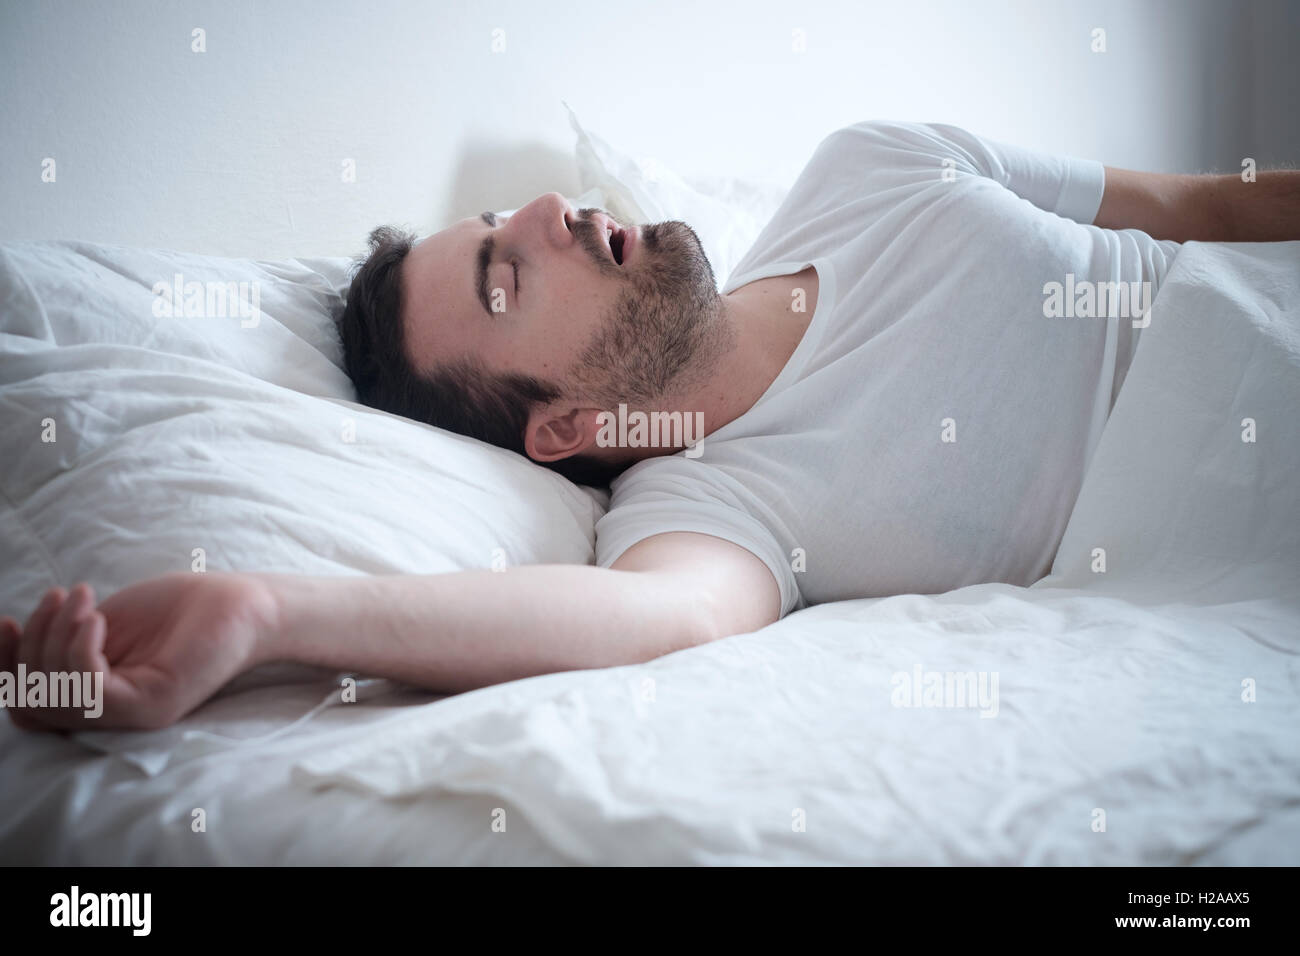 Man sleeping in his bed and snoring loudly - Stock Image